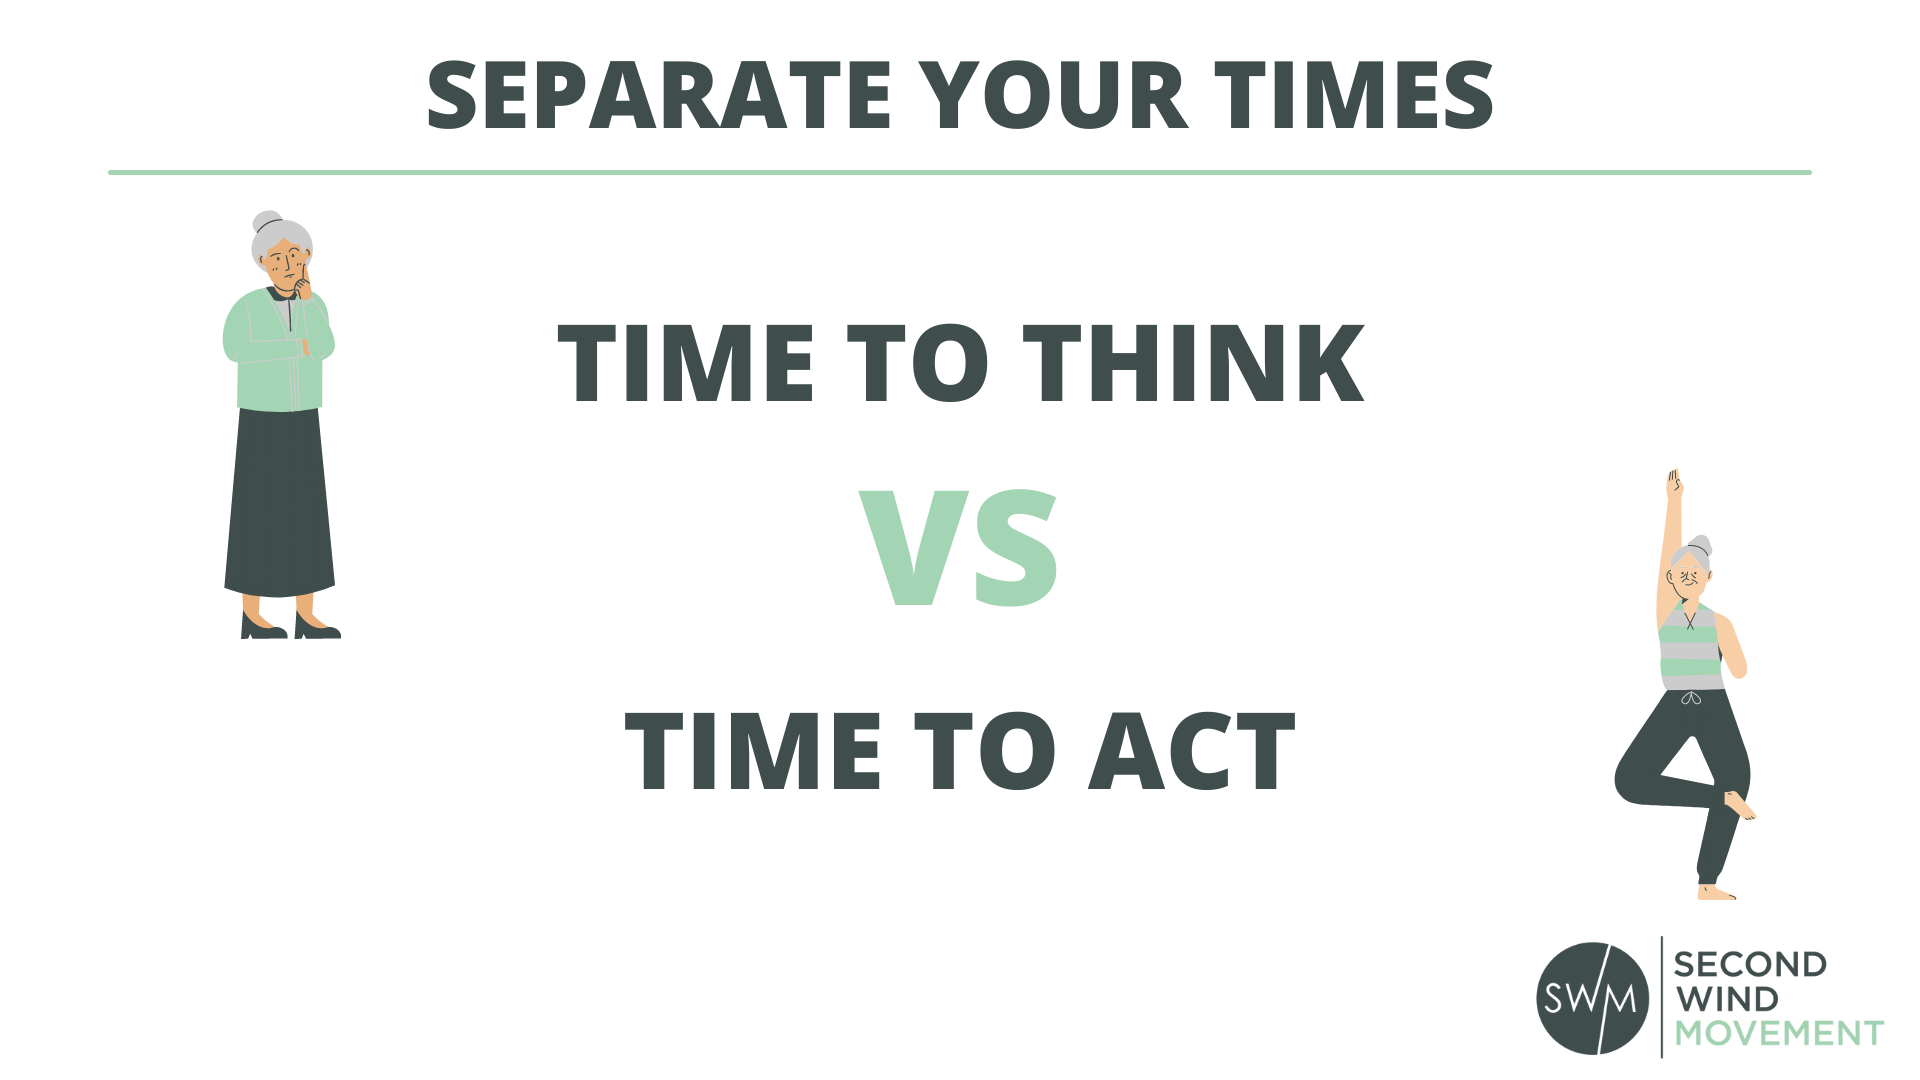 separate your times into time to think and time to act